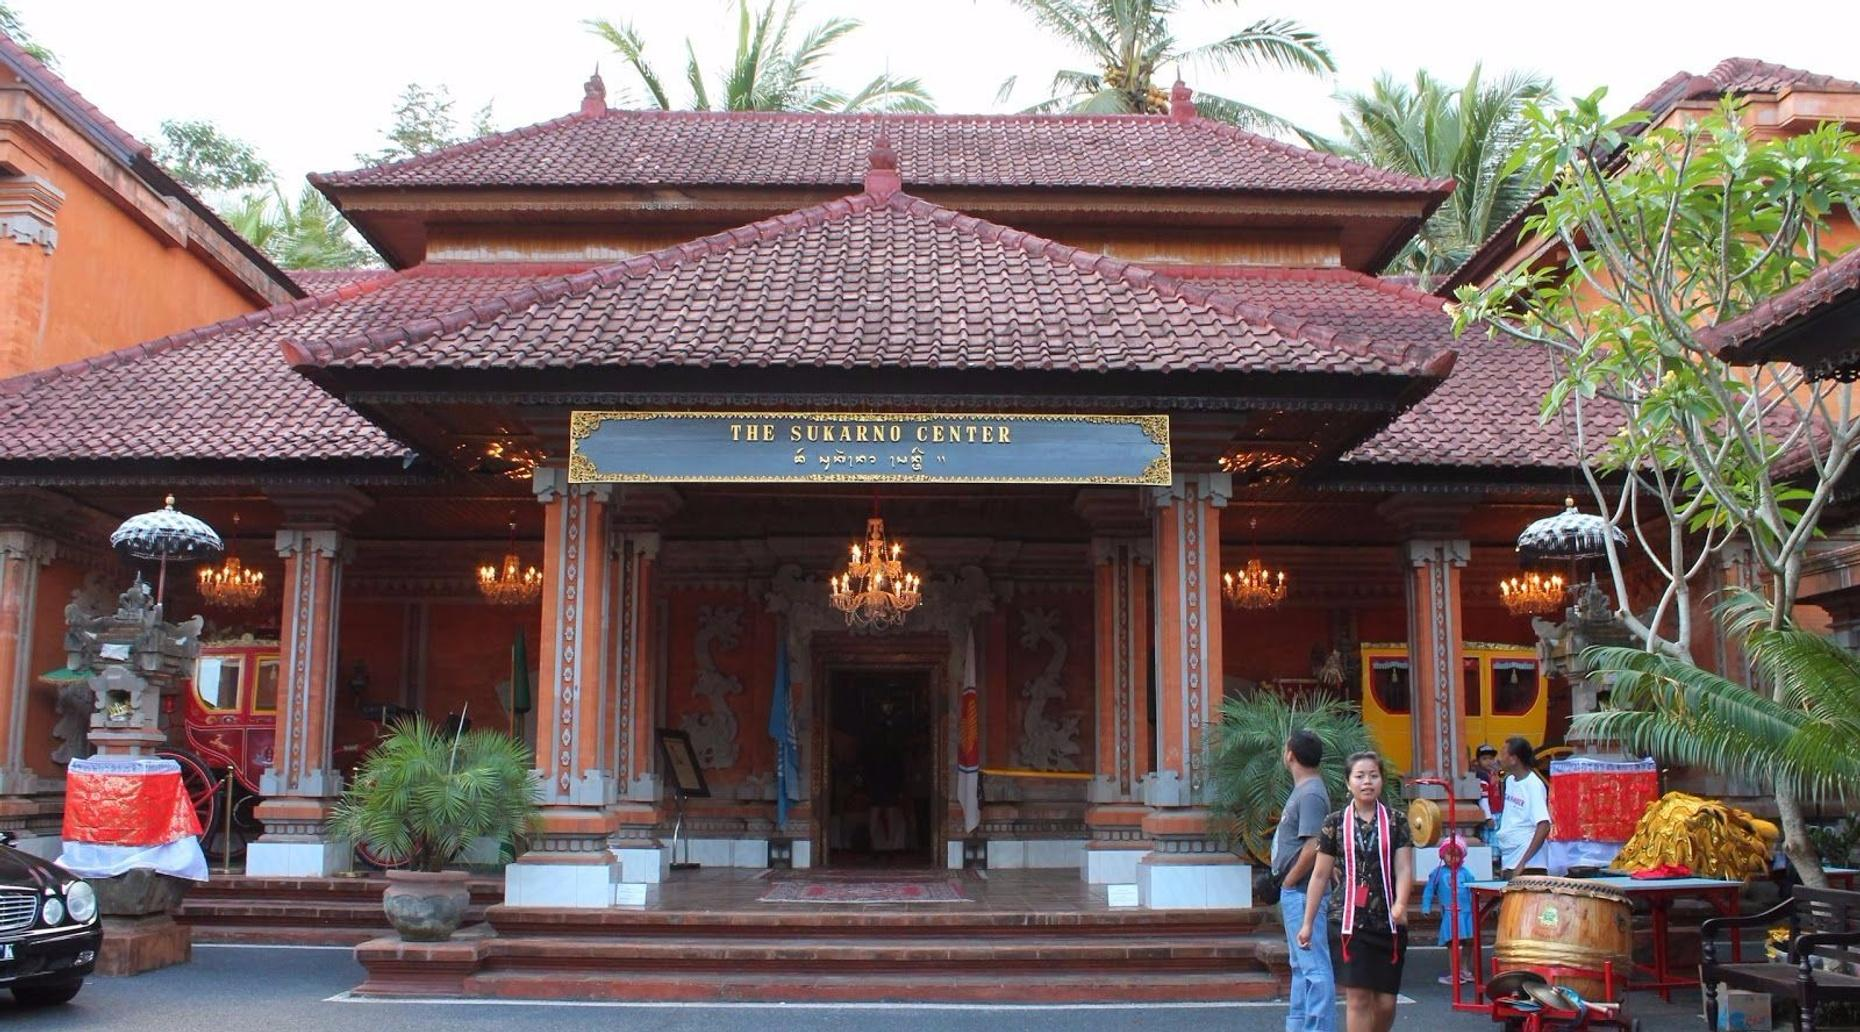 Seven Temples to Enlightenment Tour in Bali